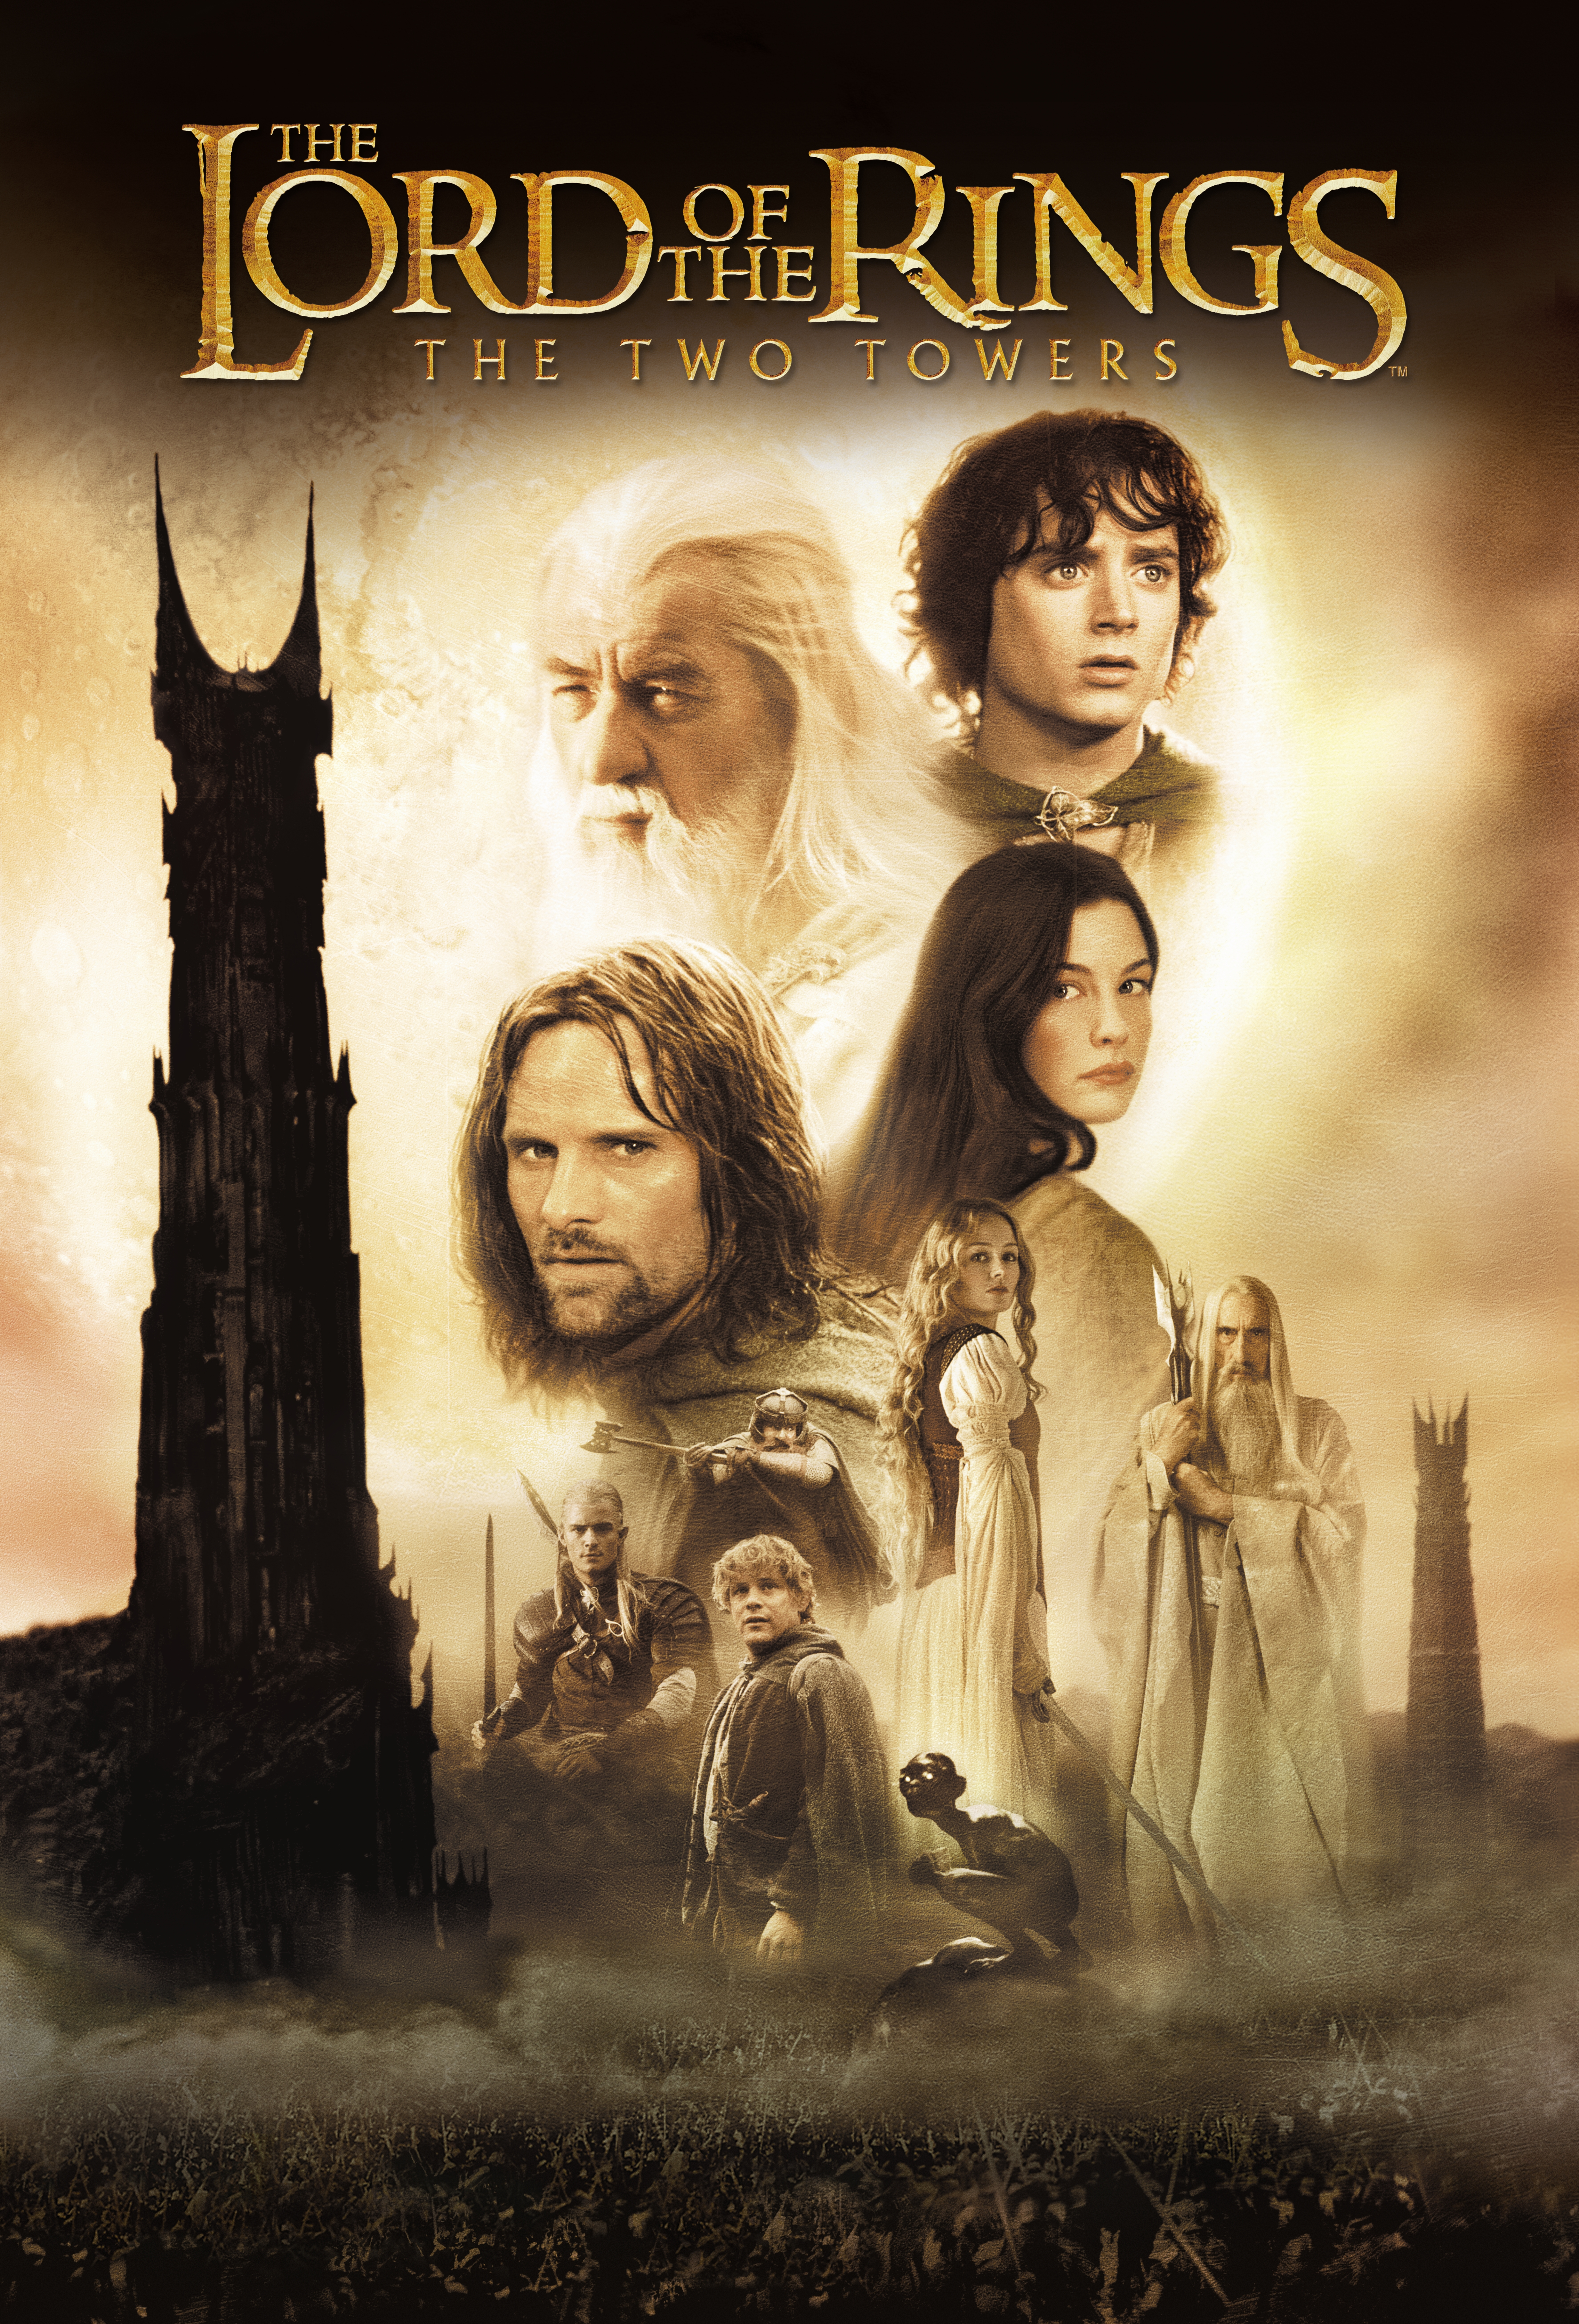 The Lord Of The Rings The Two Towers 2002 Through The Silver Screen